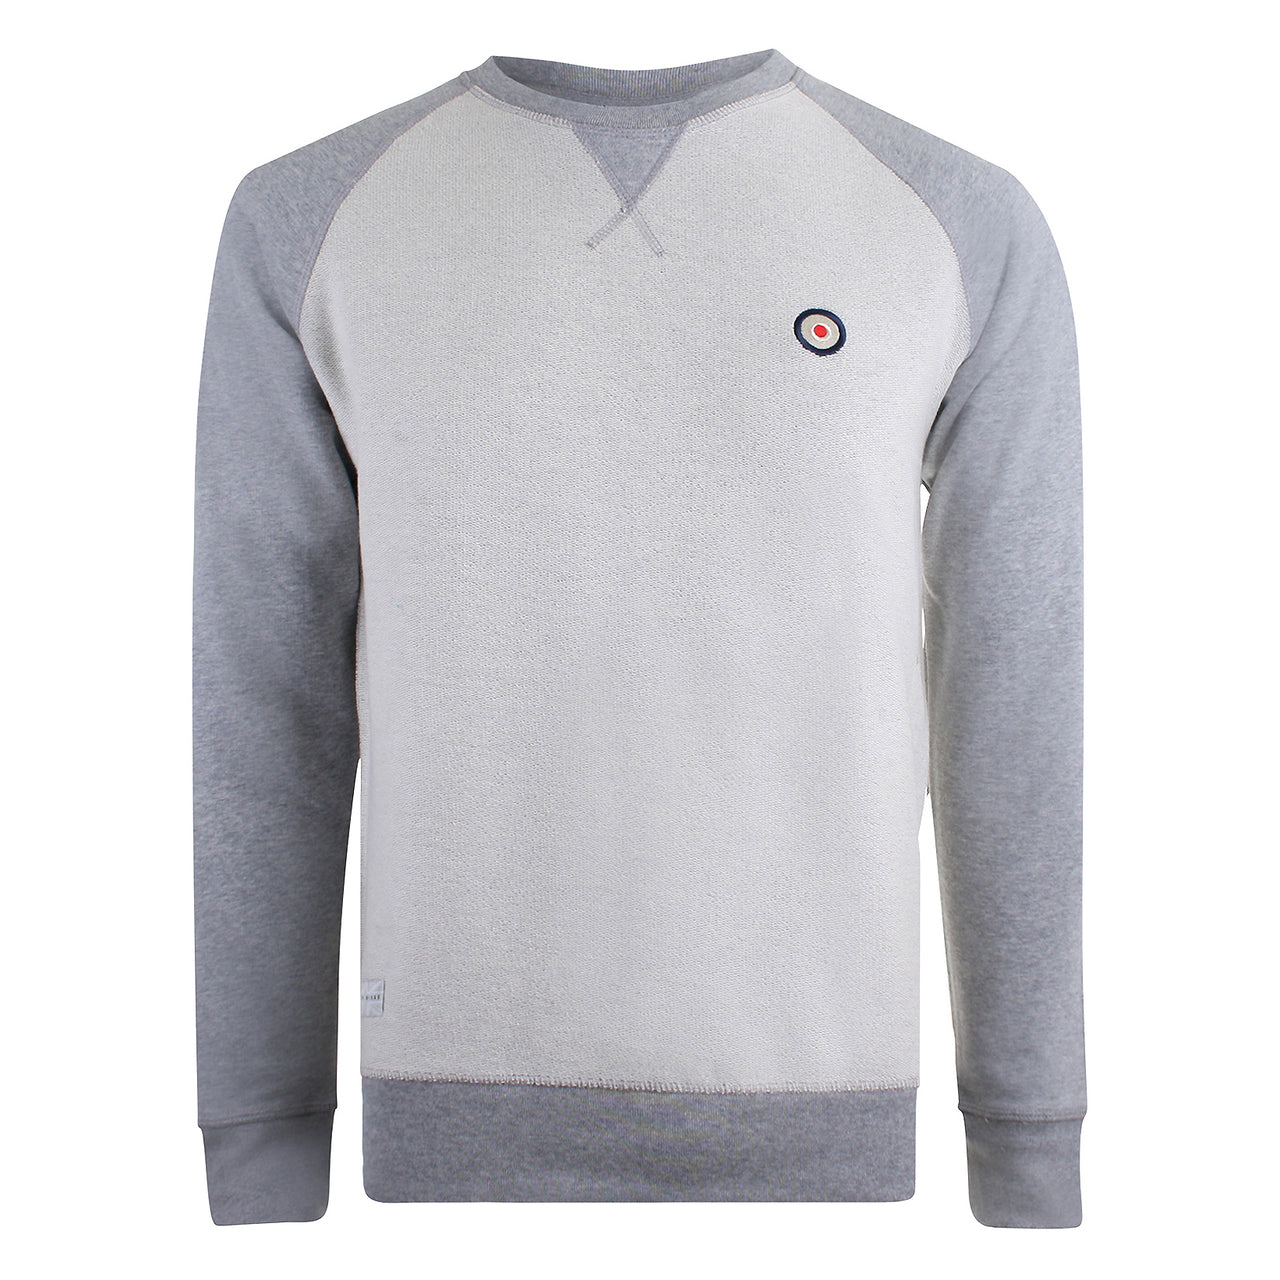 Target Crew Sweat - Heather Grey